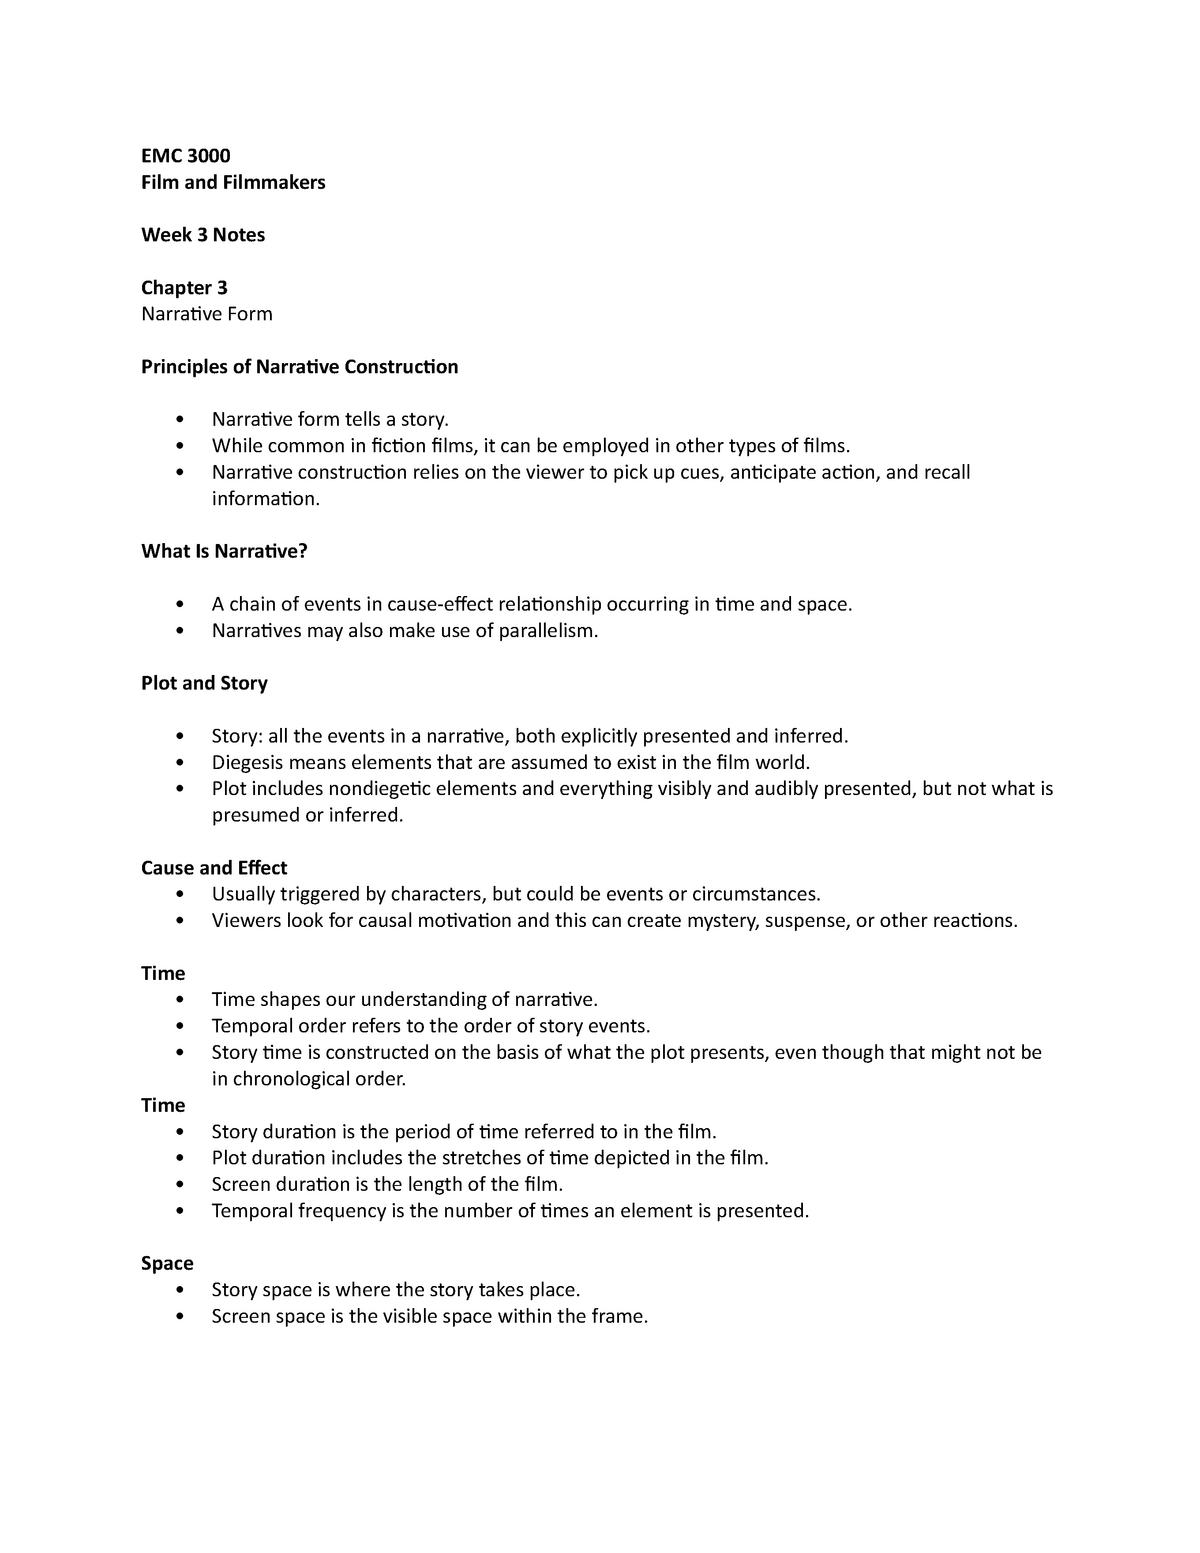 EMC 3000 week 3 ch 3 - Lecture notes 3 - EMC 3000: Films and